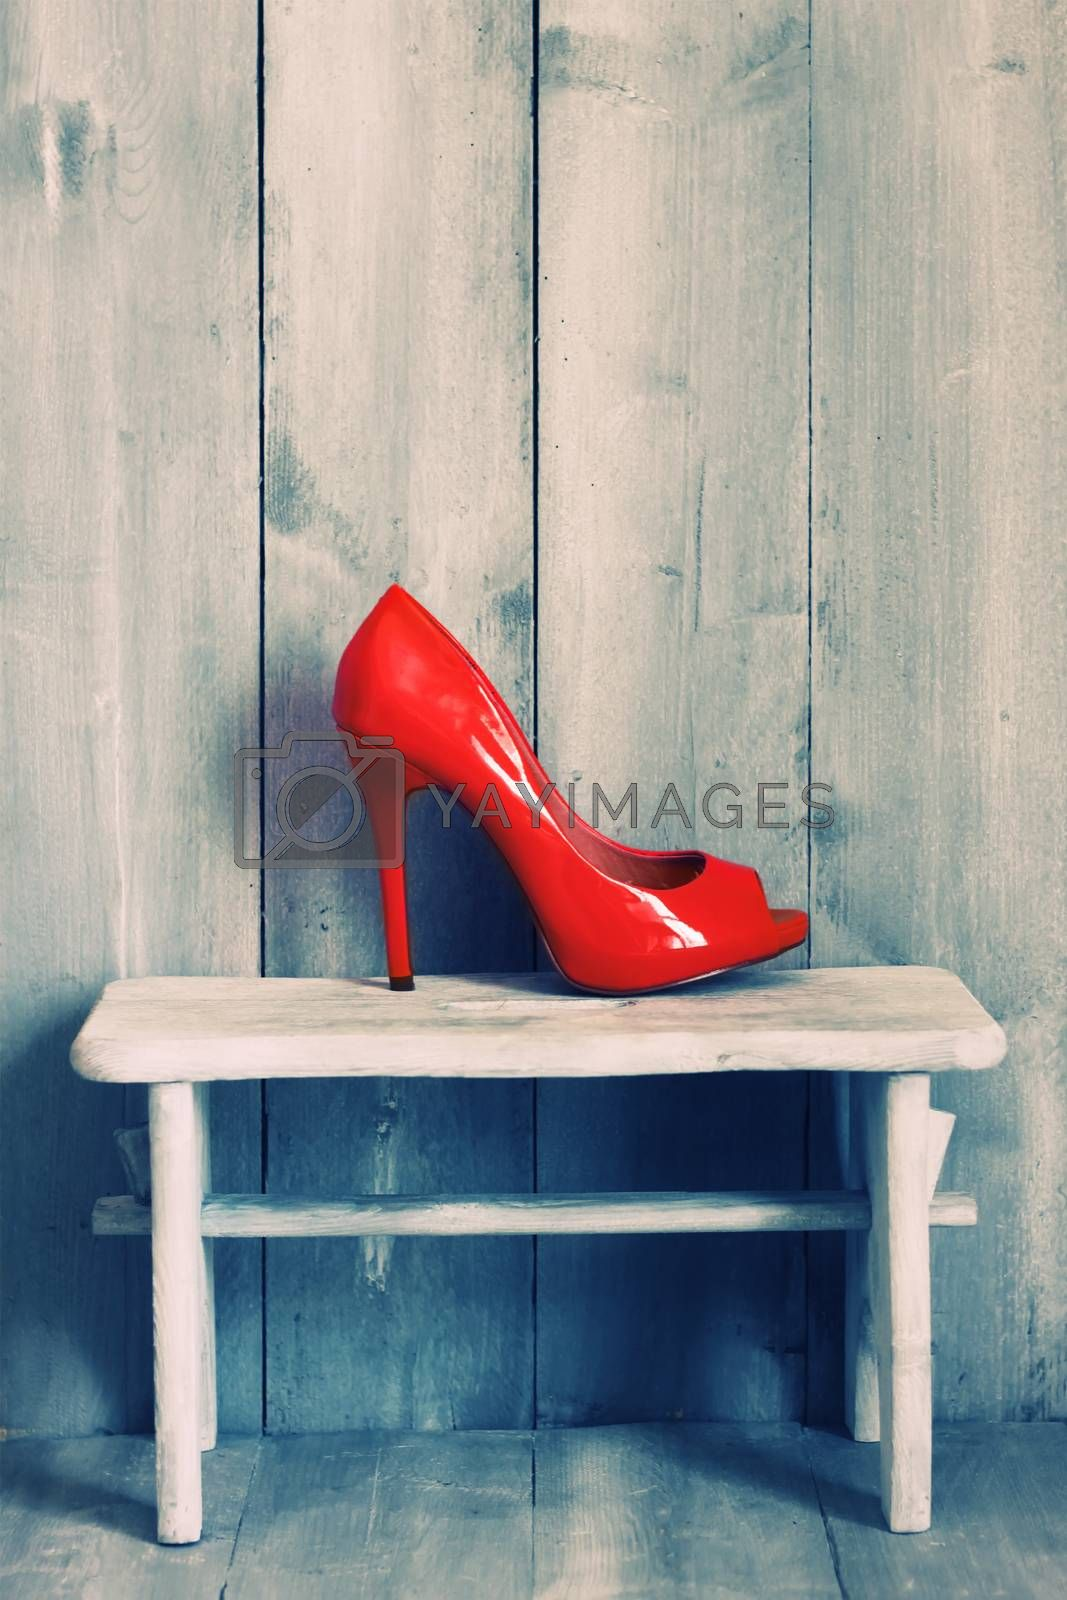 Retro photo of red shoes